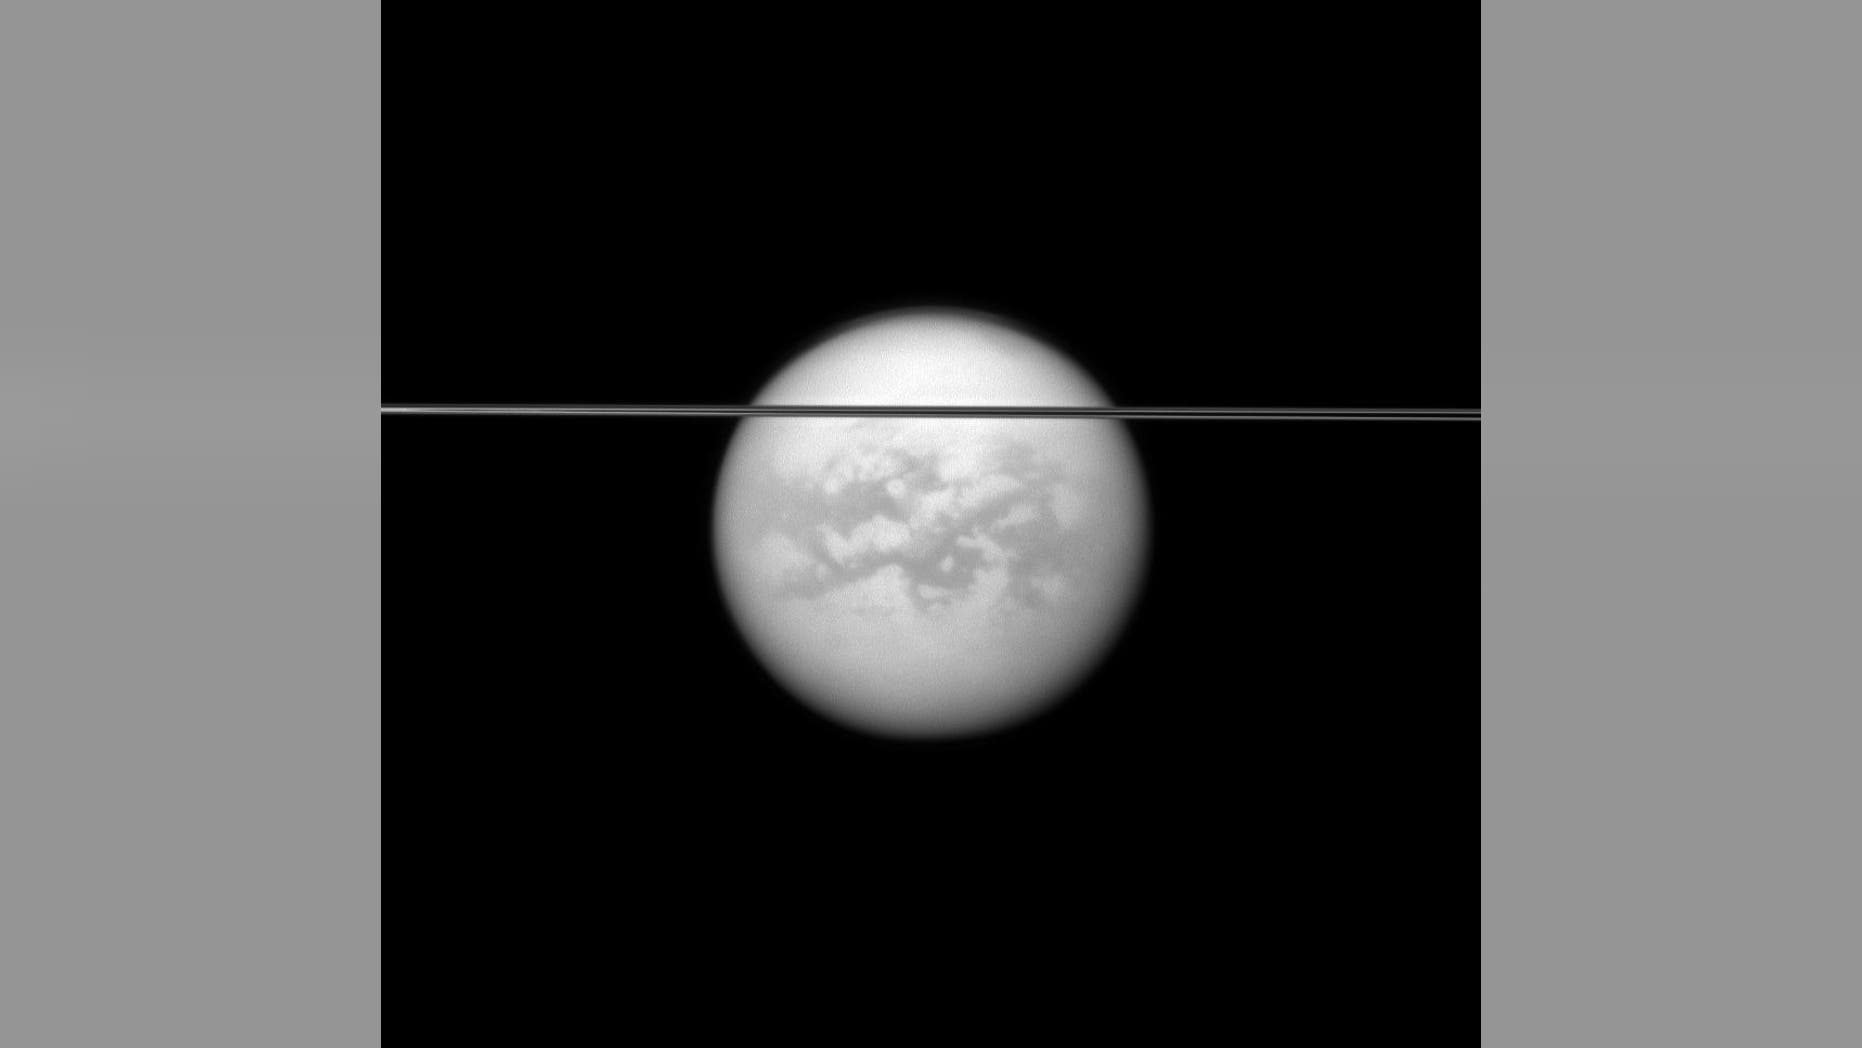 NASA's Cassini spacecraft captured this view of Saturn's largest moon, Titan, with Saturn's rings in the foreground.